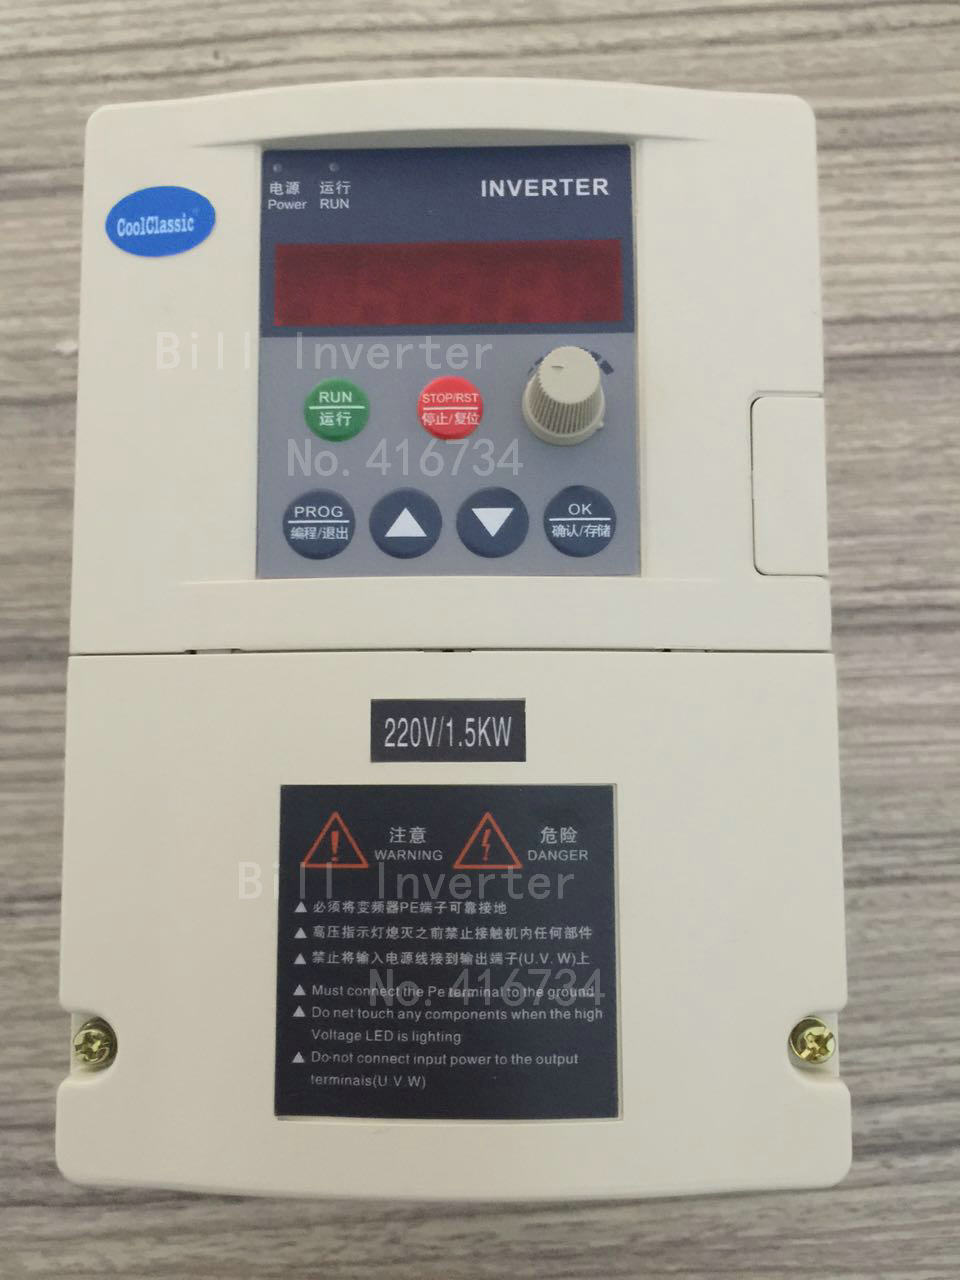 Vfd inverter coolclassic zw s2015 inverter jfd 1500w for 3 phase vfd single phase motor